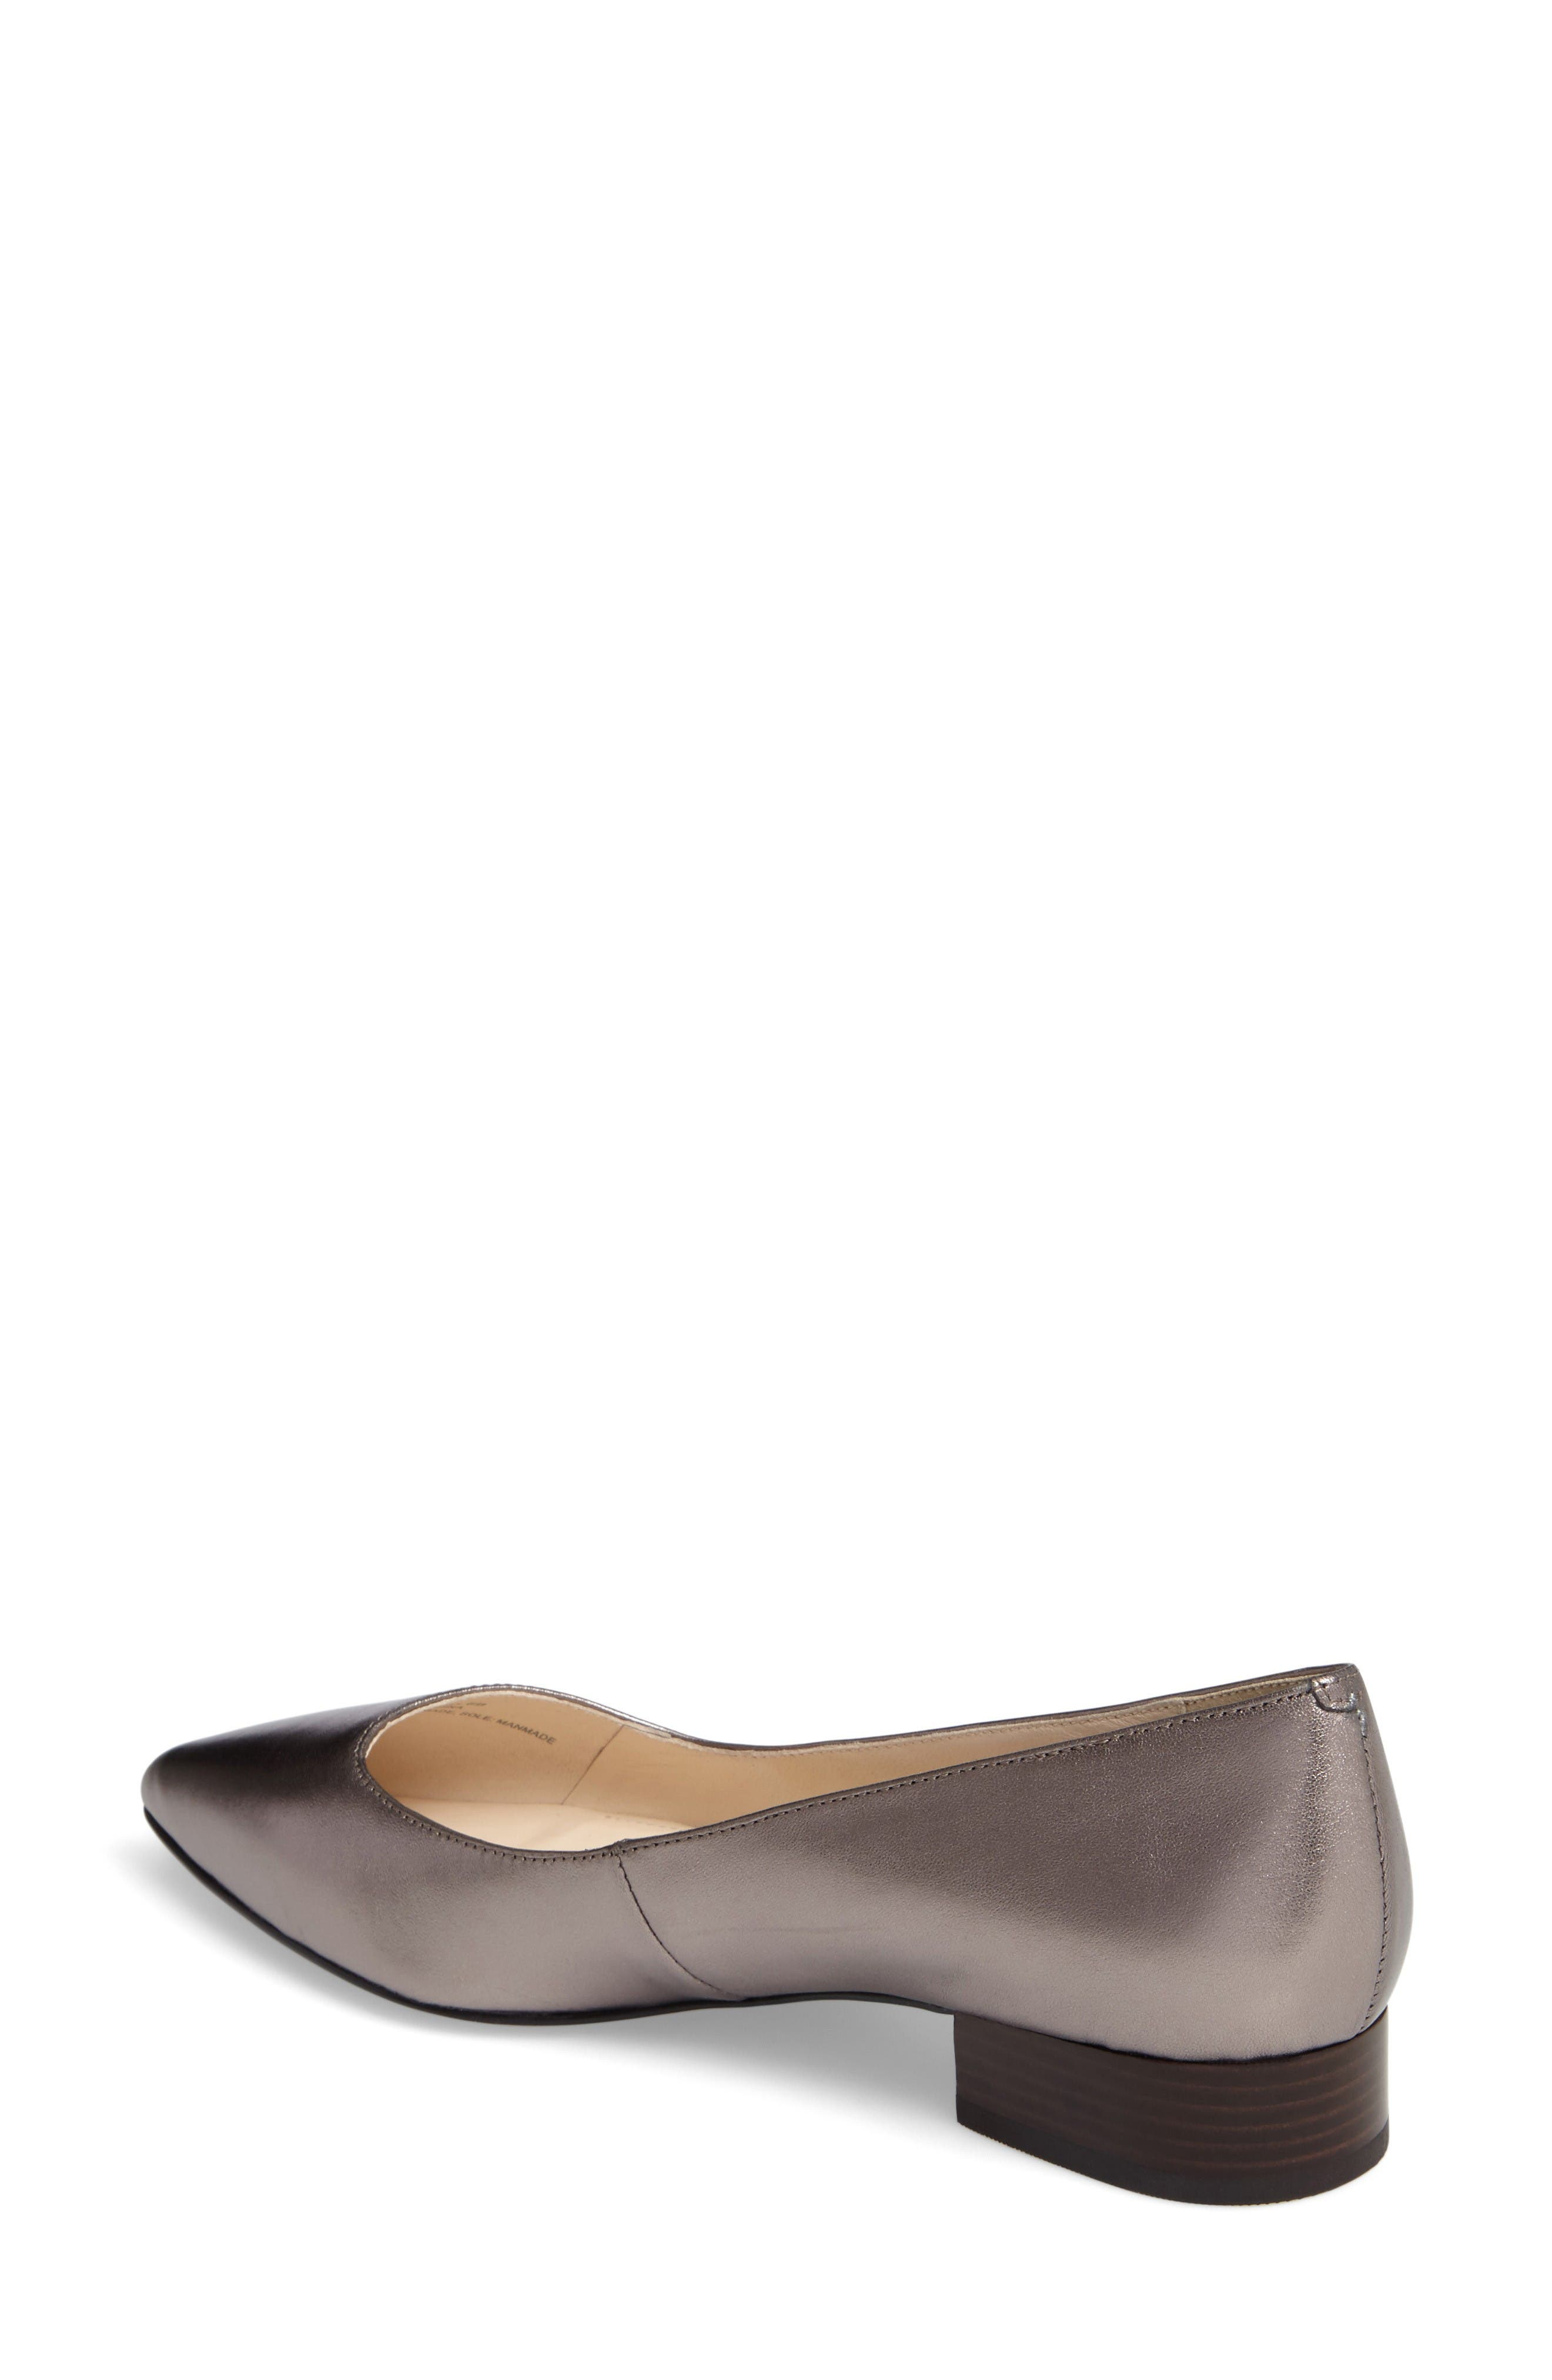 Heidy Pointy Toe Flat,                             Alternate thumbnail 2, color,                             Pewter Metallic Leather